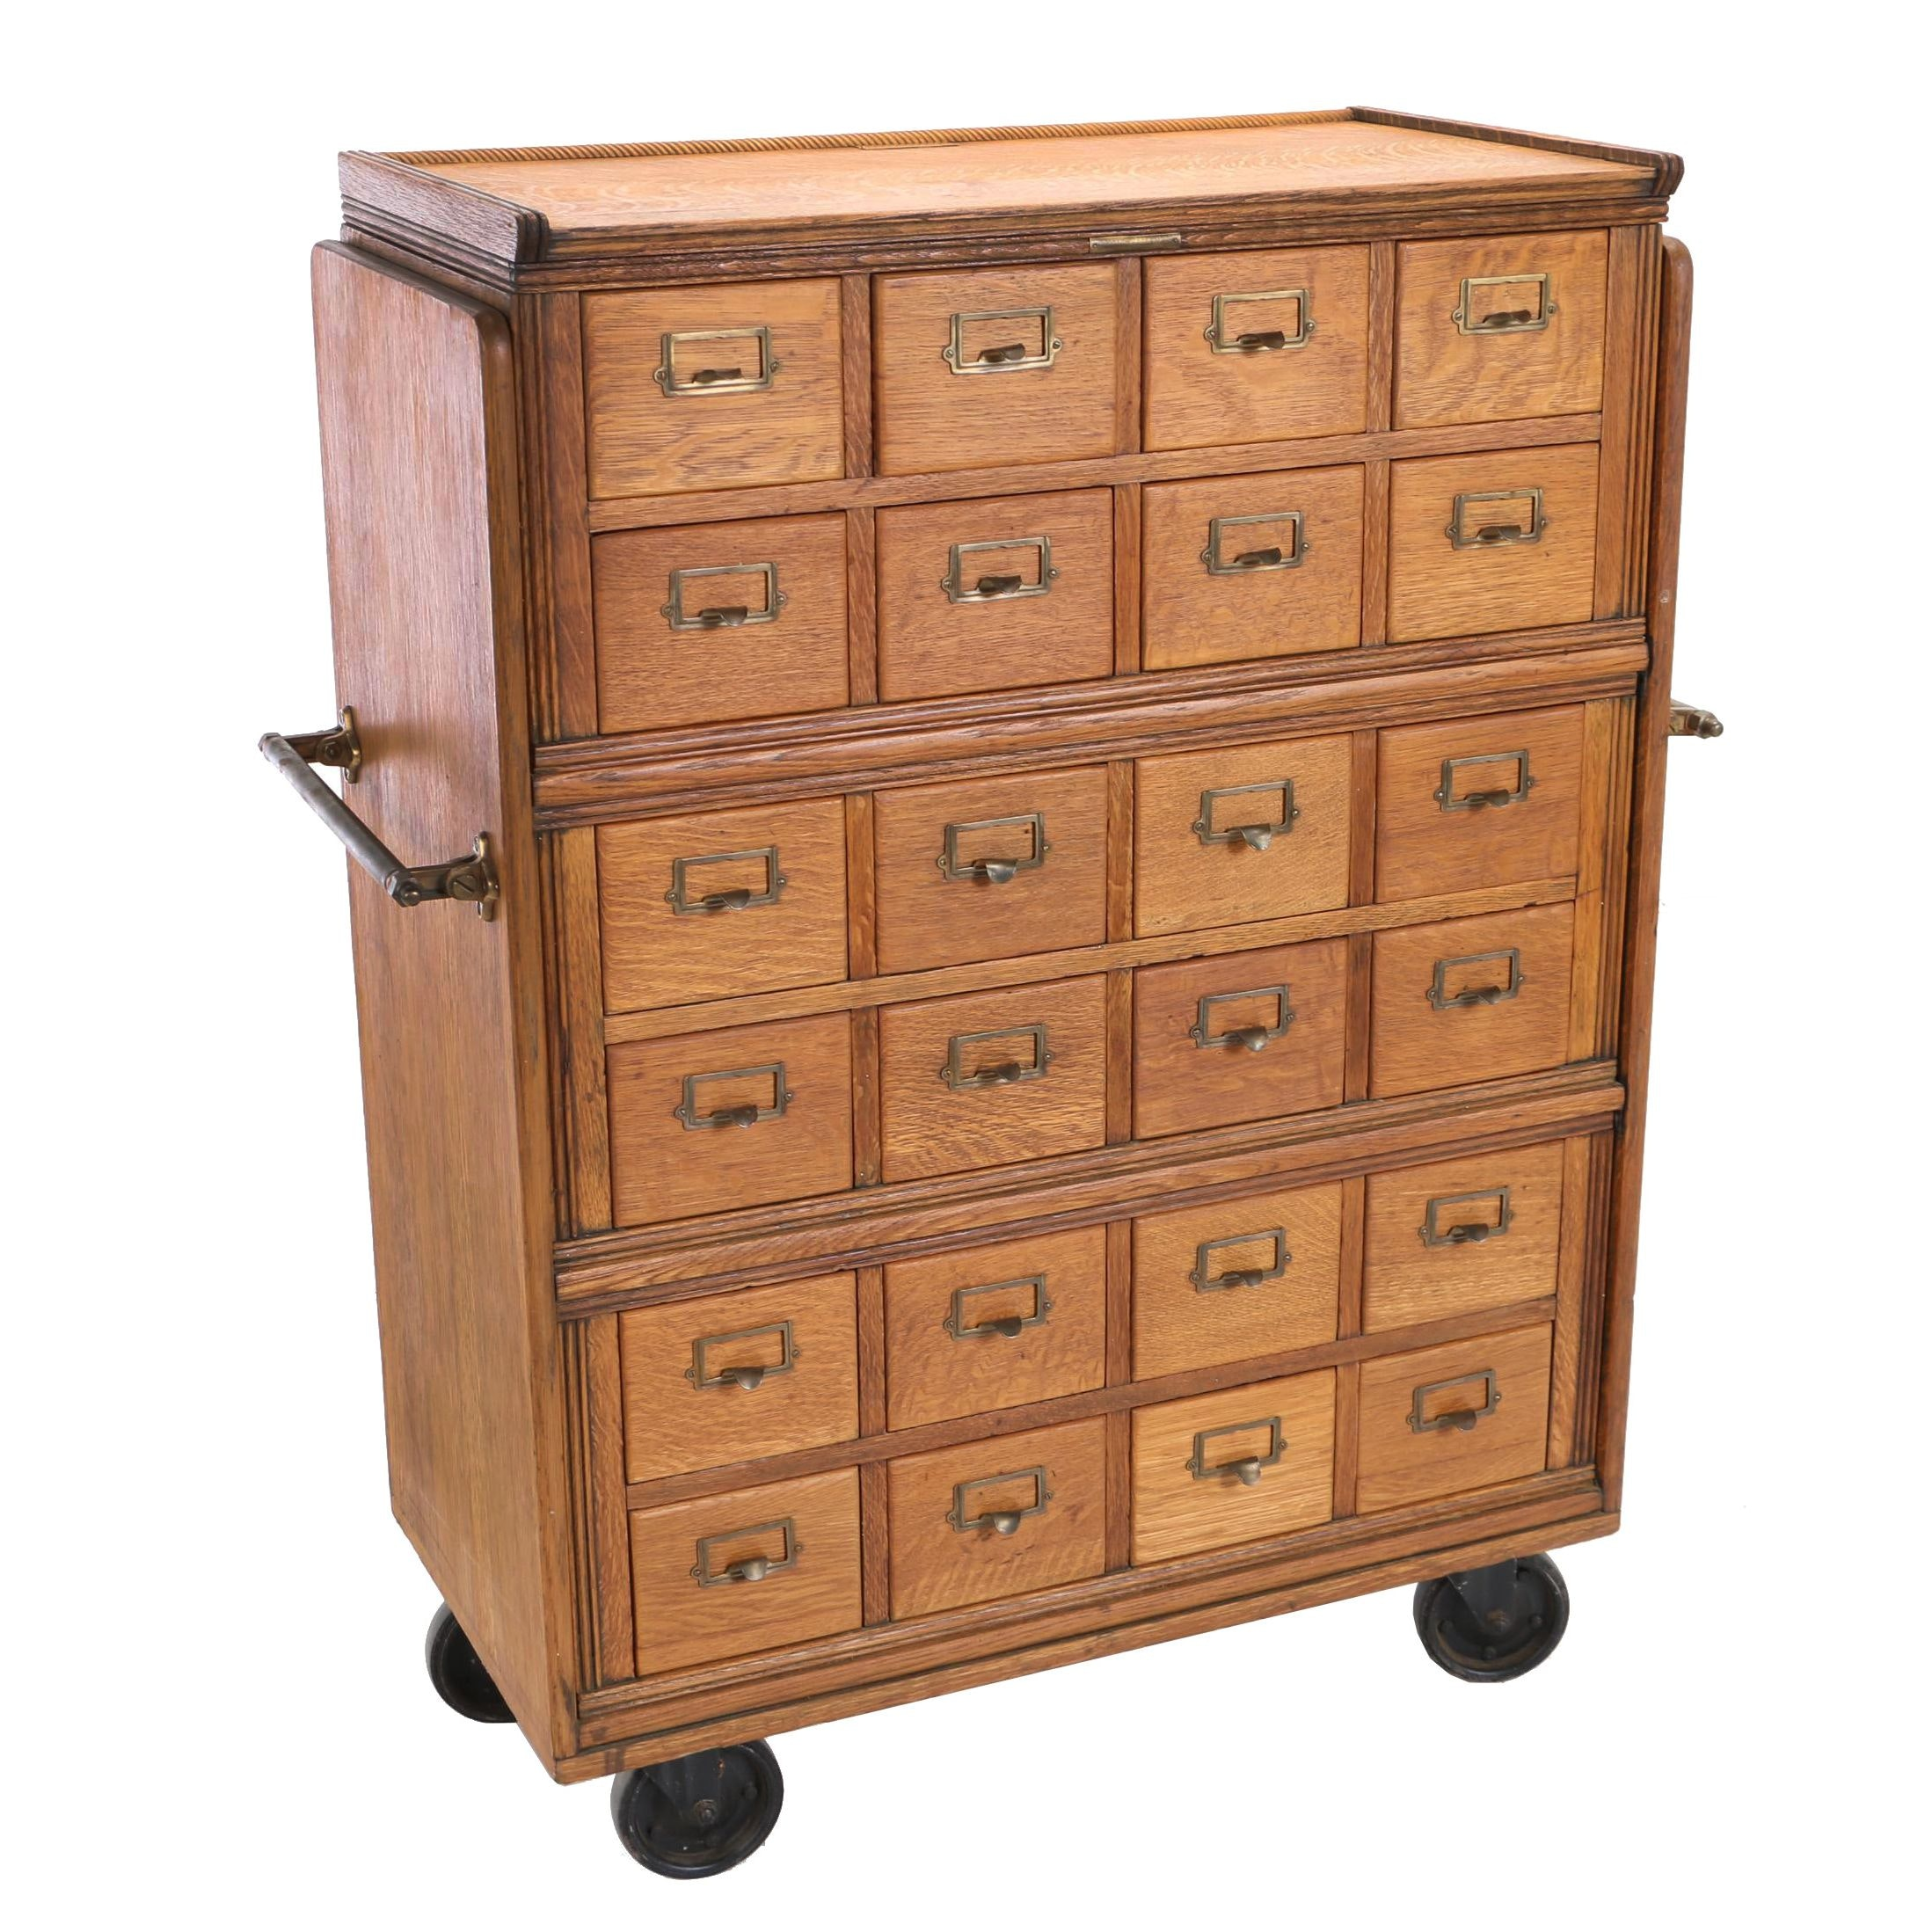 Oak Rolling Library Card Catalog by Yawman and Erbe Mfg. Co., Early 20th Century